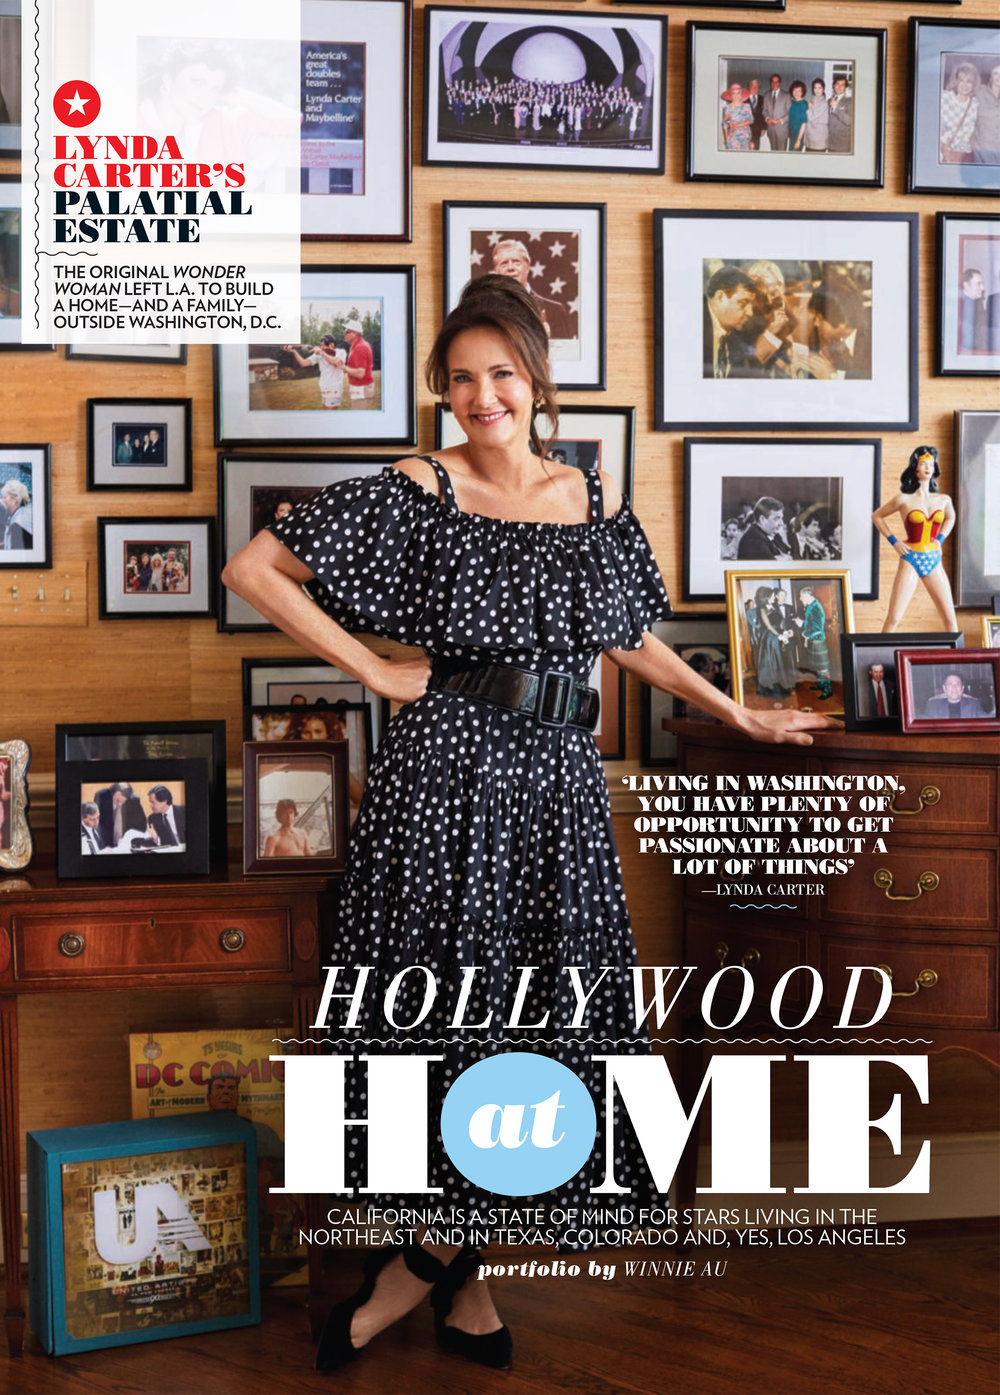 HollywoodatHome22017-1.jpg